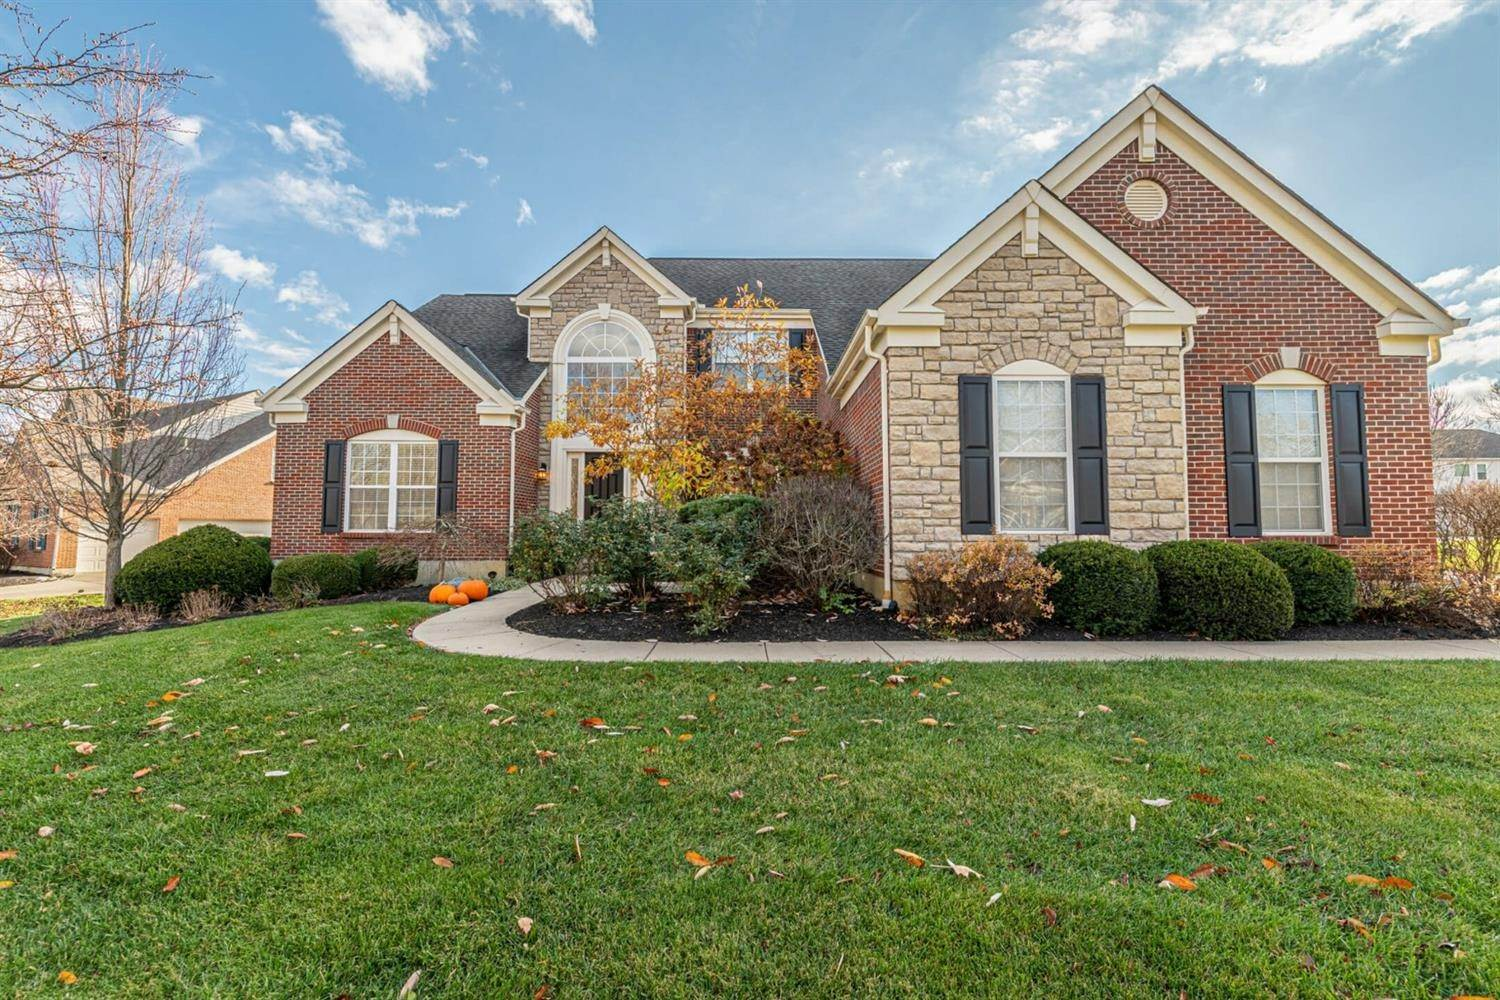 Single Family Homes for Sale at 1720 Heritage Lake Drive Centerville, Ohio 45458 United States